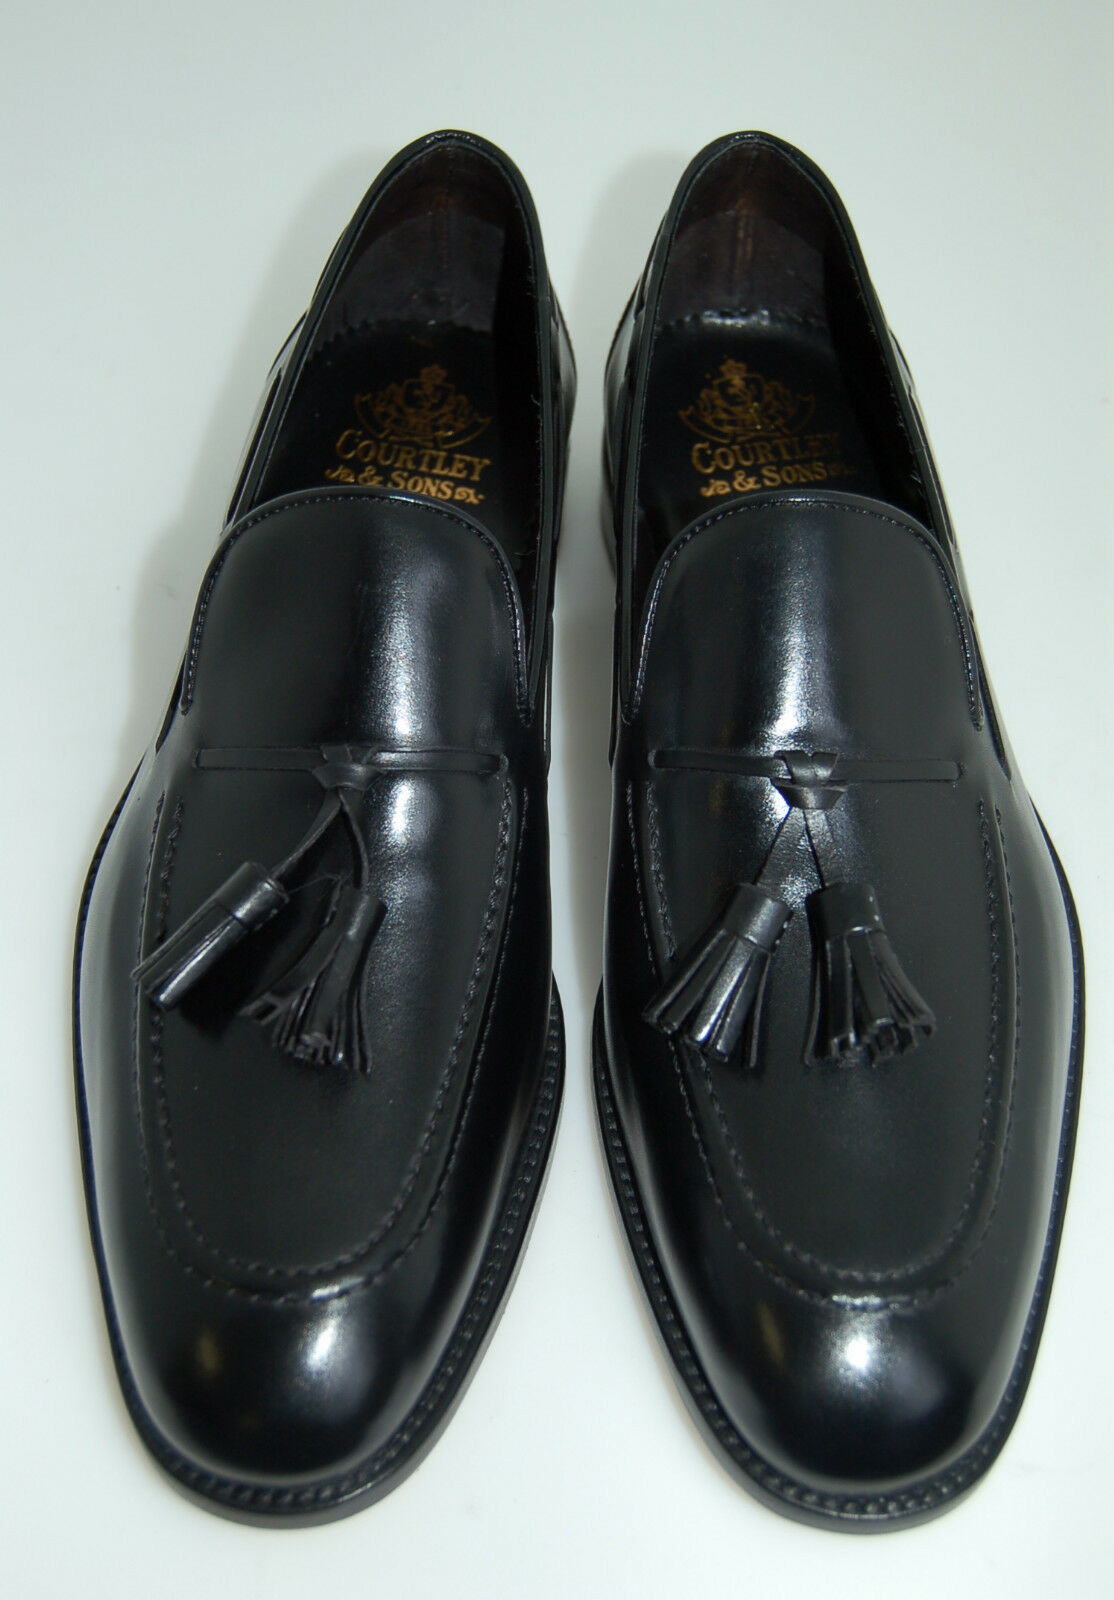 MAN - TASSLE SLIPON-schwarz SLIPON-schwarz SLIPON-schwarz CALF-MOCASSINO VITELLO schwarz- LEATHER SOLE-BLAKE CSTN 8c2423